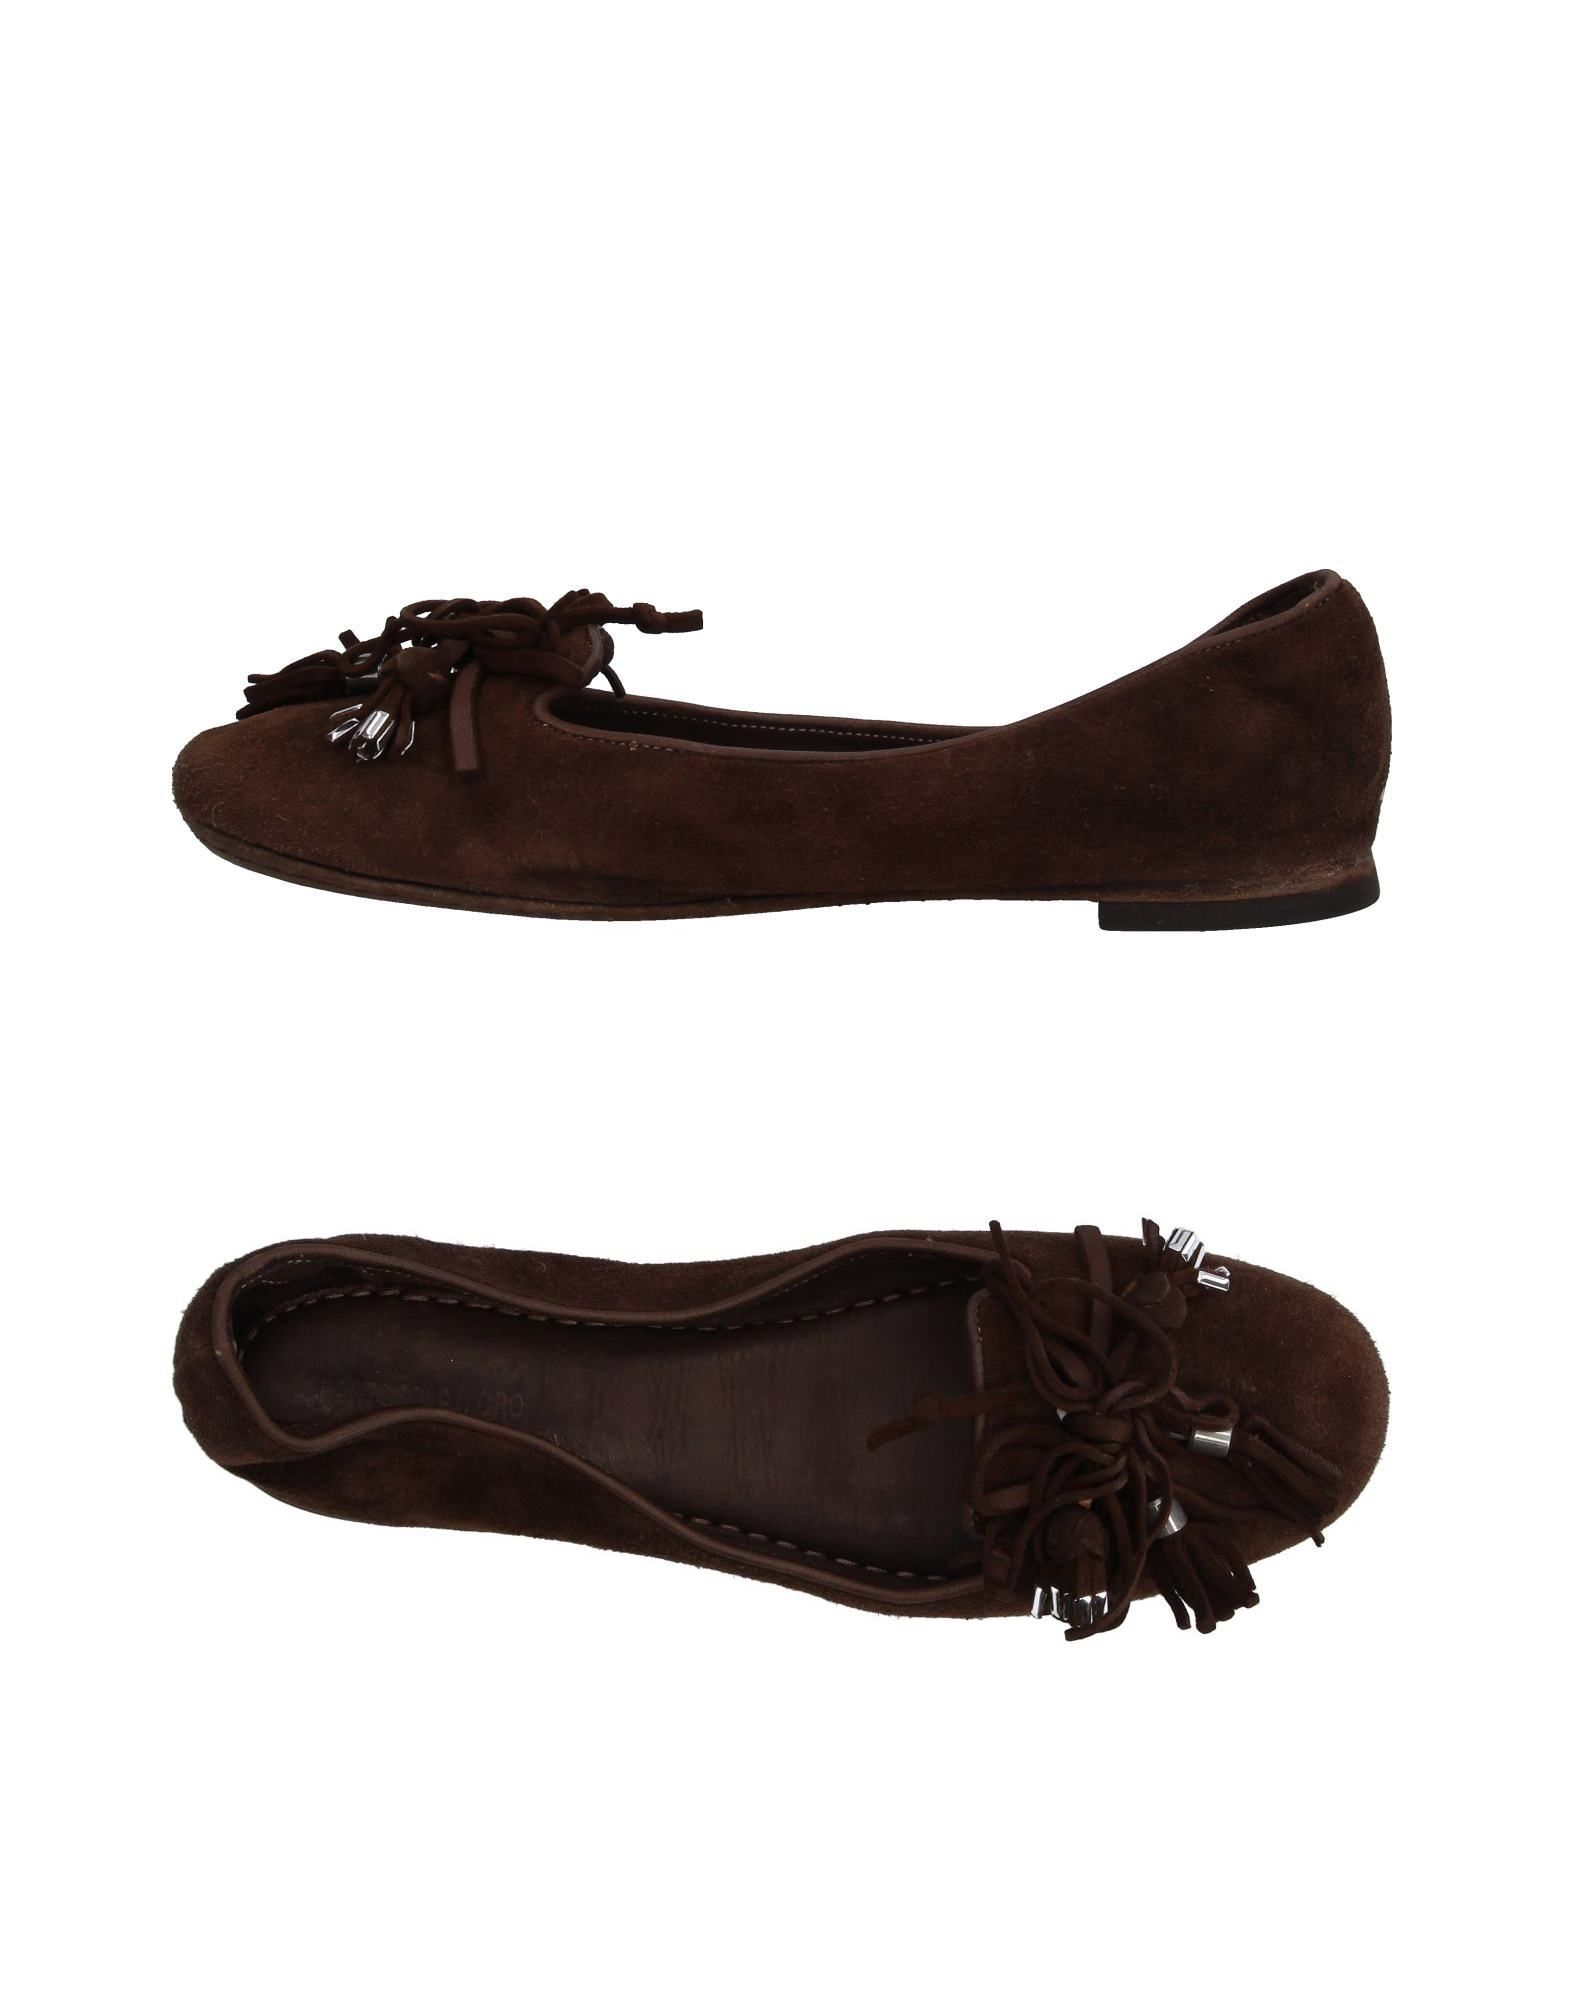 Pantofola on D'oro Loafers - Women Pantofola D'oro Loafers online on Pantofola  Australia - 11353886TW 5228da